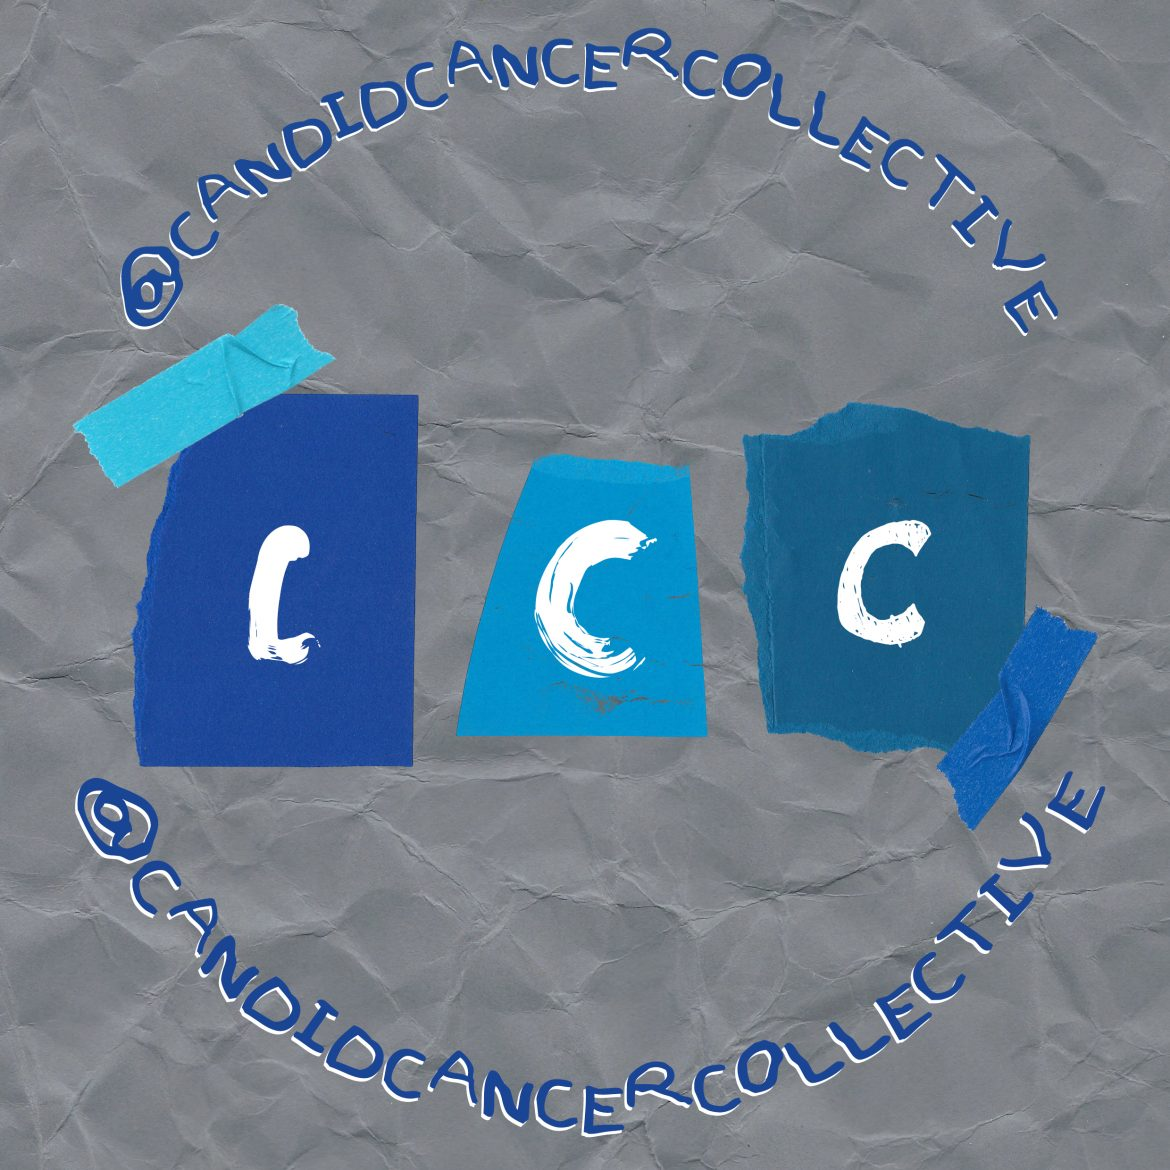 Introducing the Candid Cancer Collective!